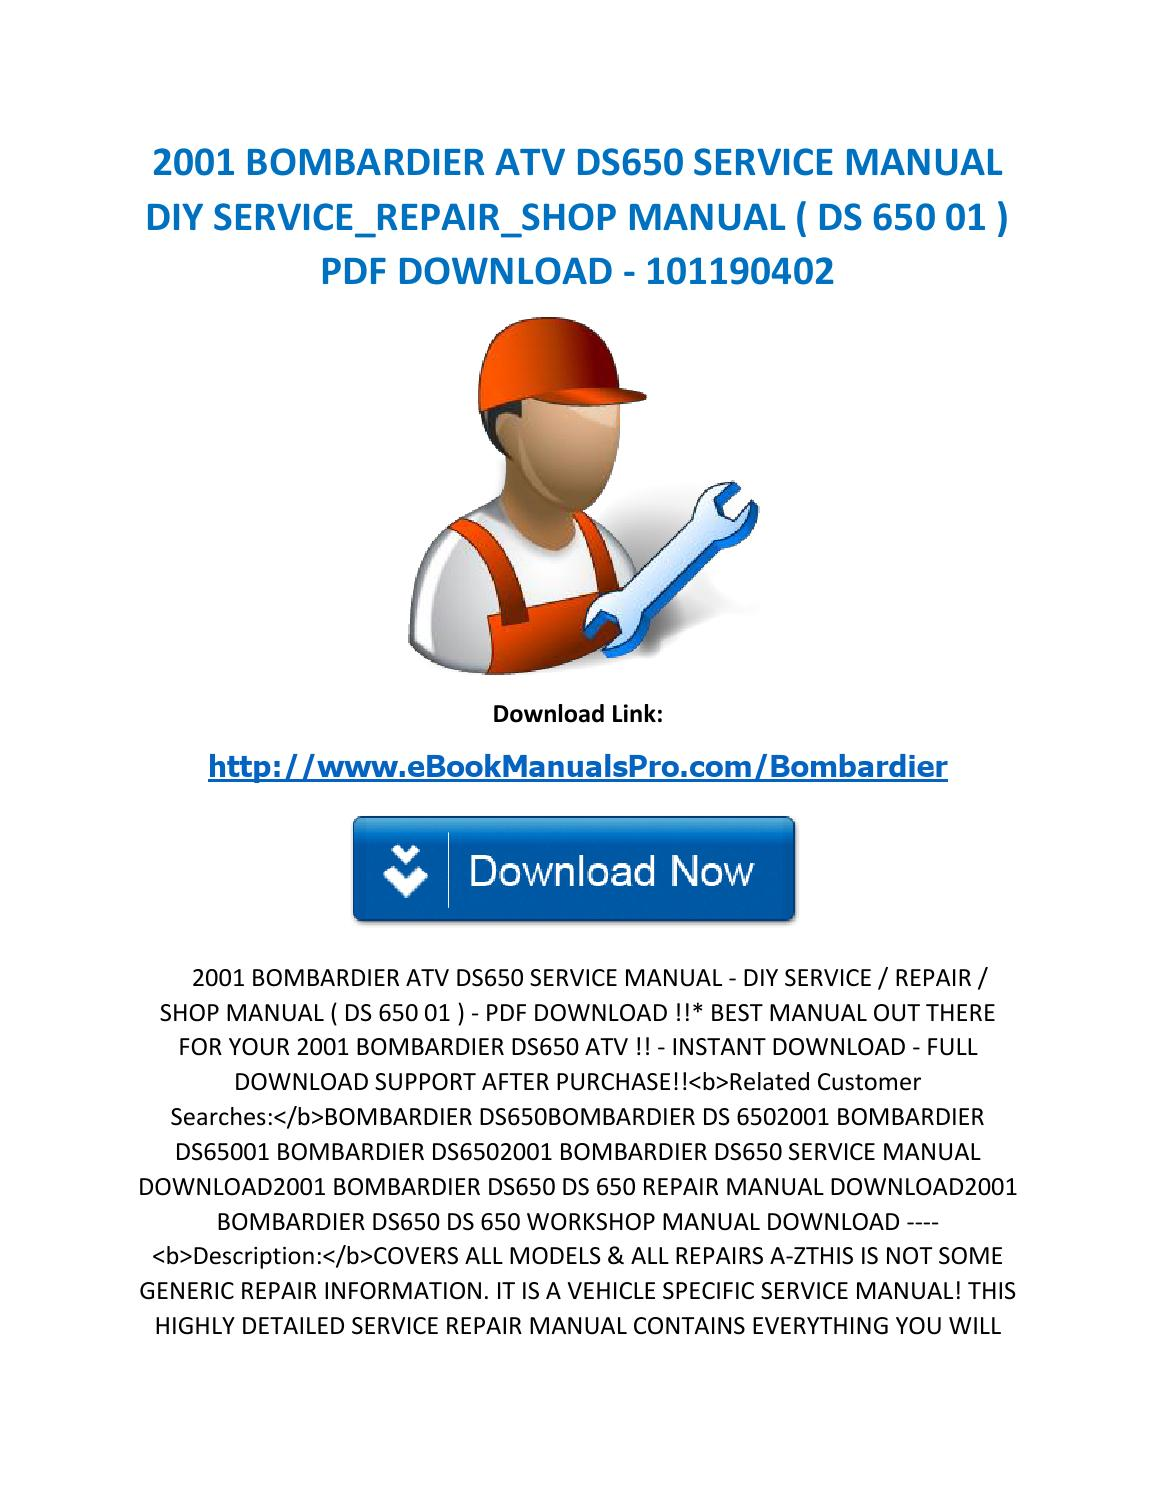 2001 bombardier atv ds650 service manual diy service repair shop manual (  ds 650 01 ) pdf download 1 by ebookmanualspro - issuu